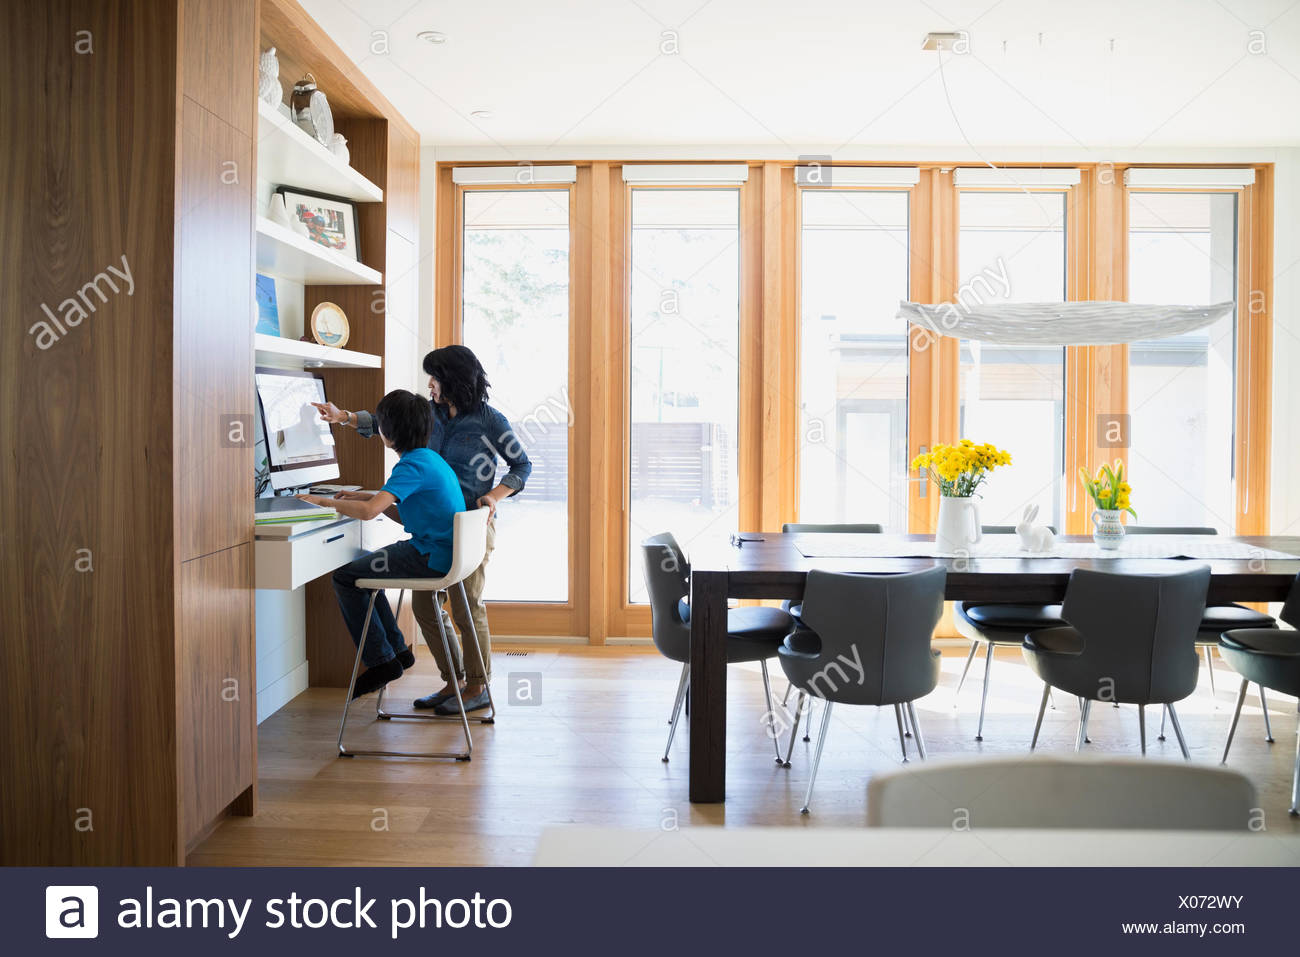 Mother And Son Using Computer Desk Dining Room